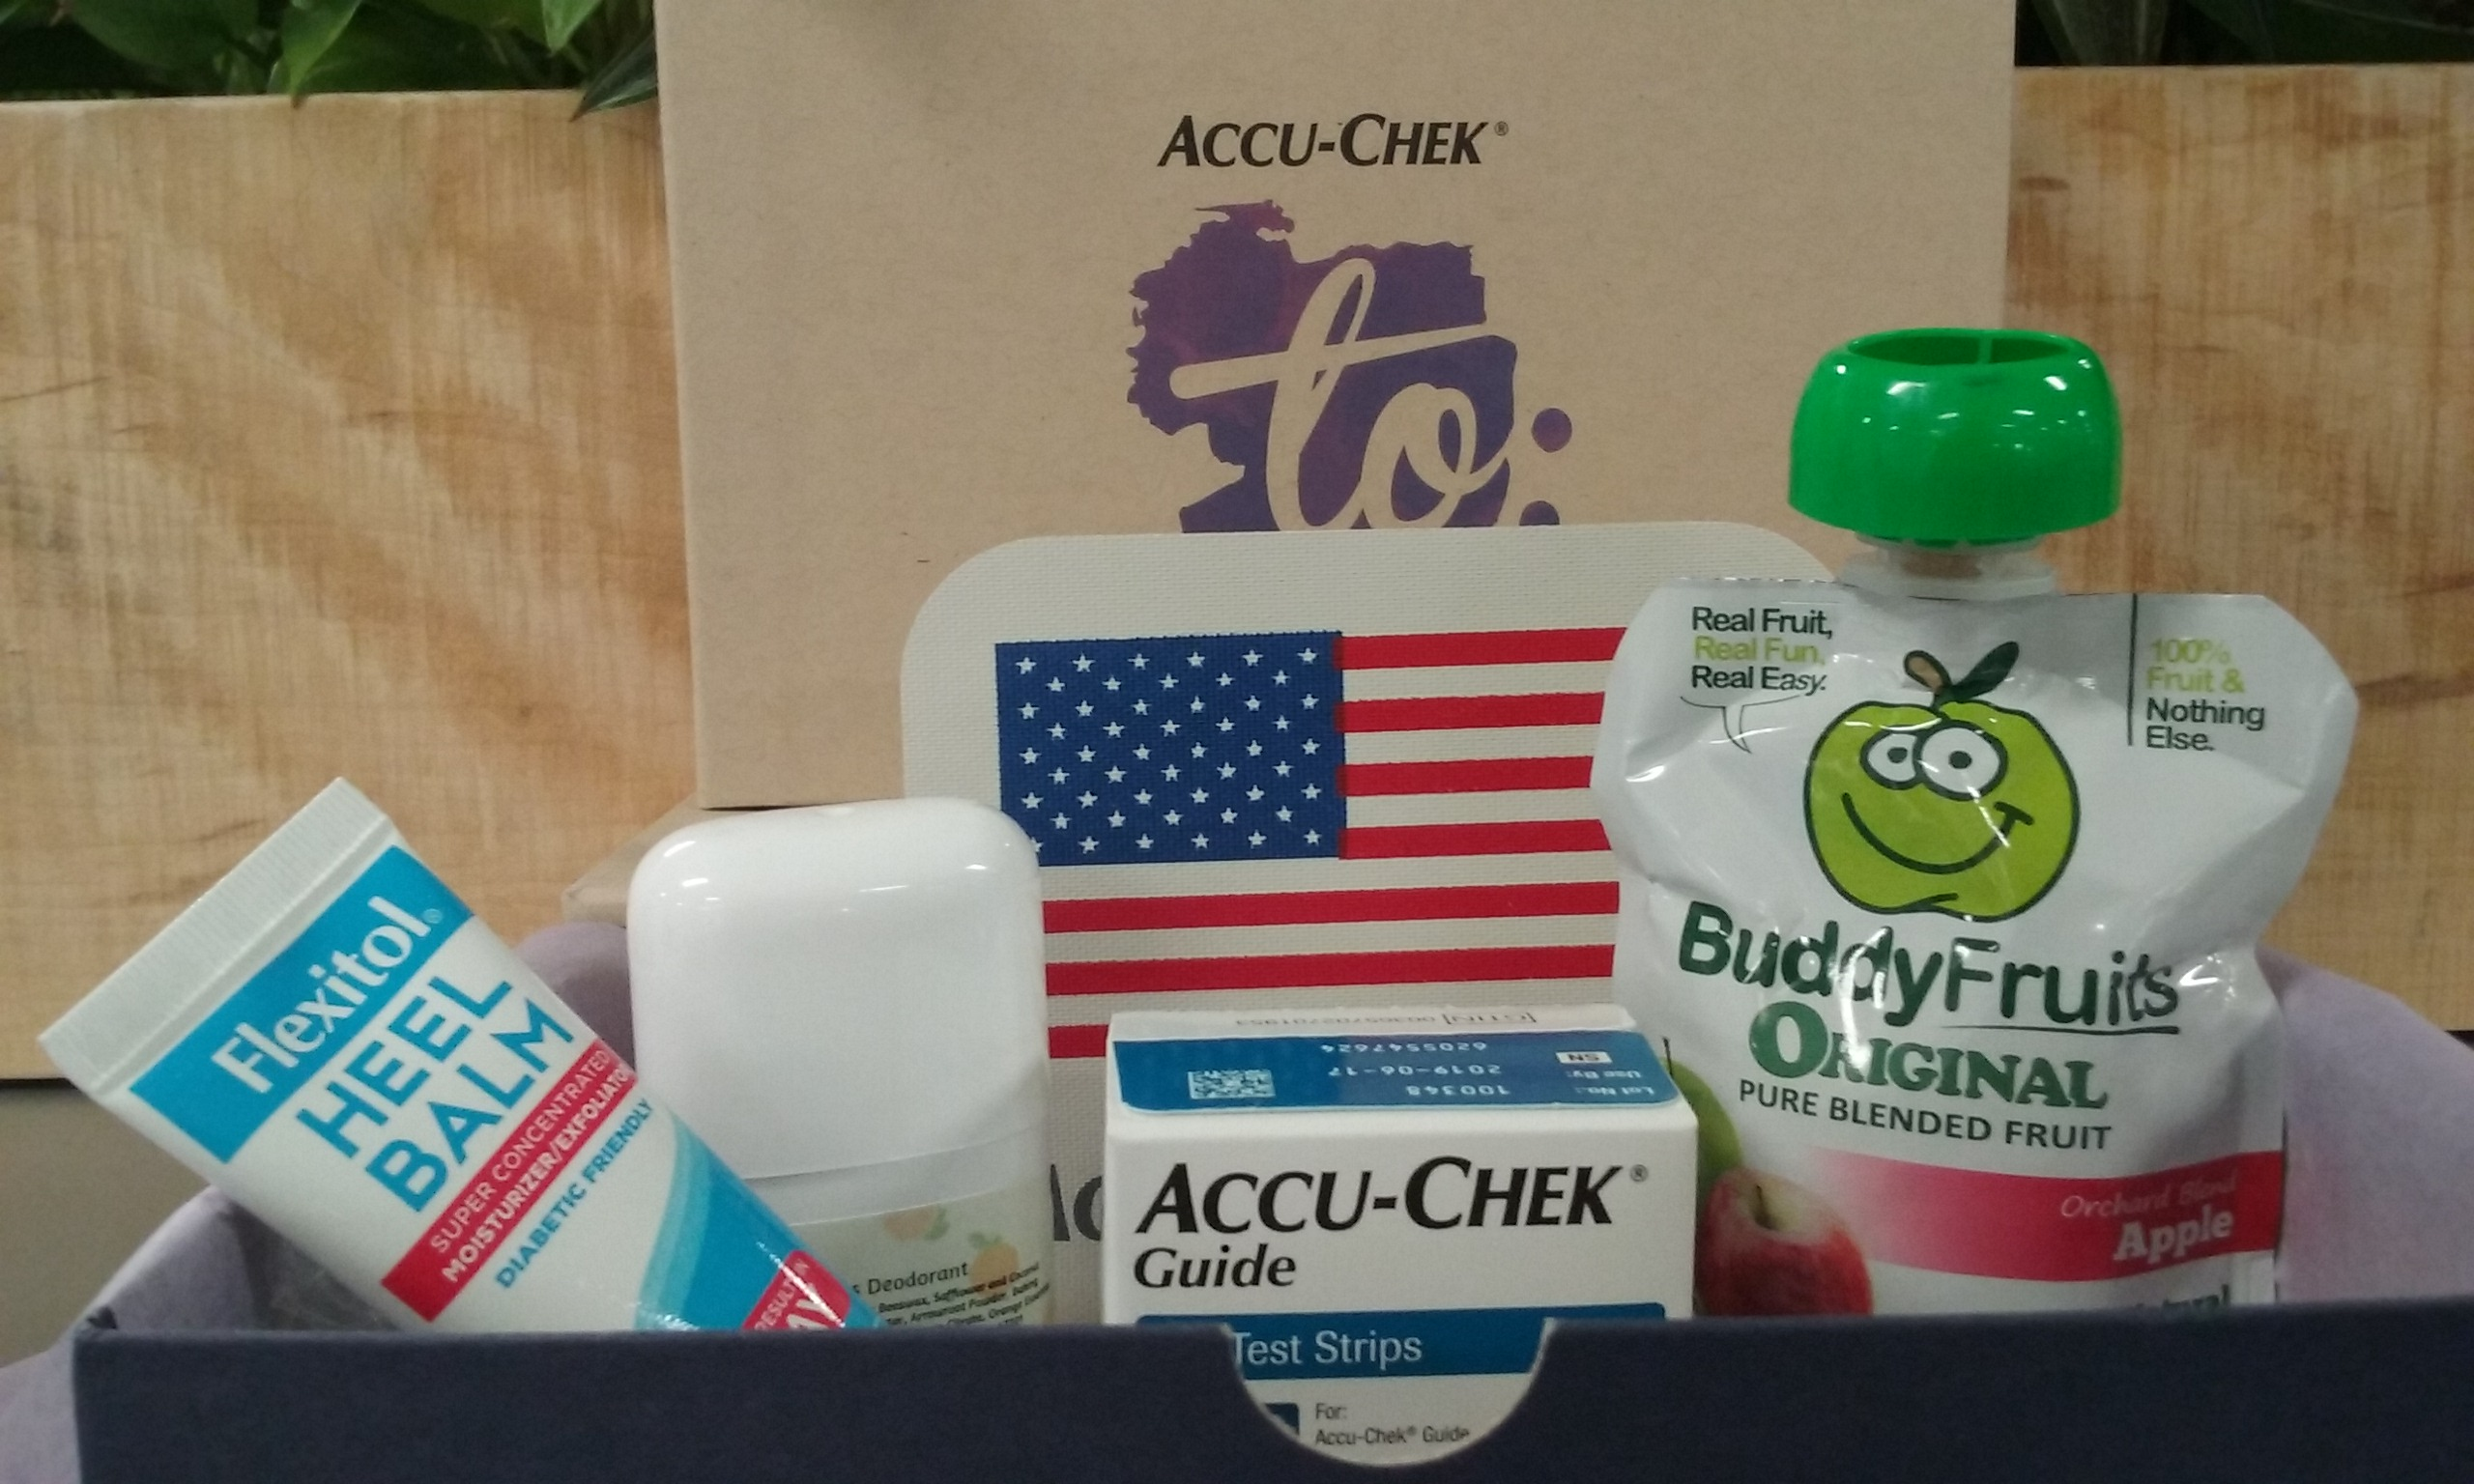 Accu-Chek To experience